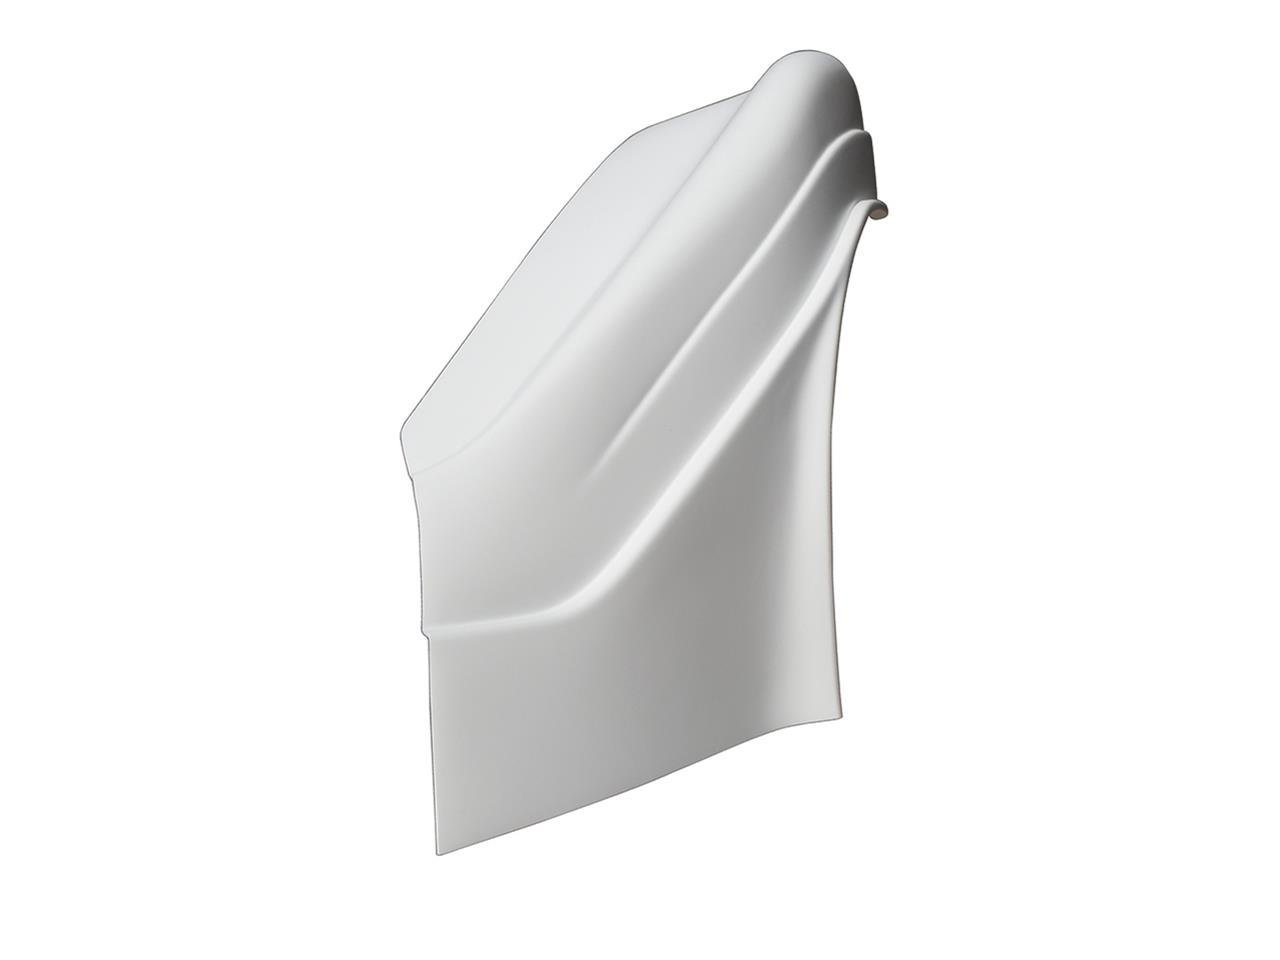 MD3 Evolution 2 Max Downforce Fender - (Left - White)